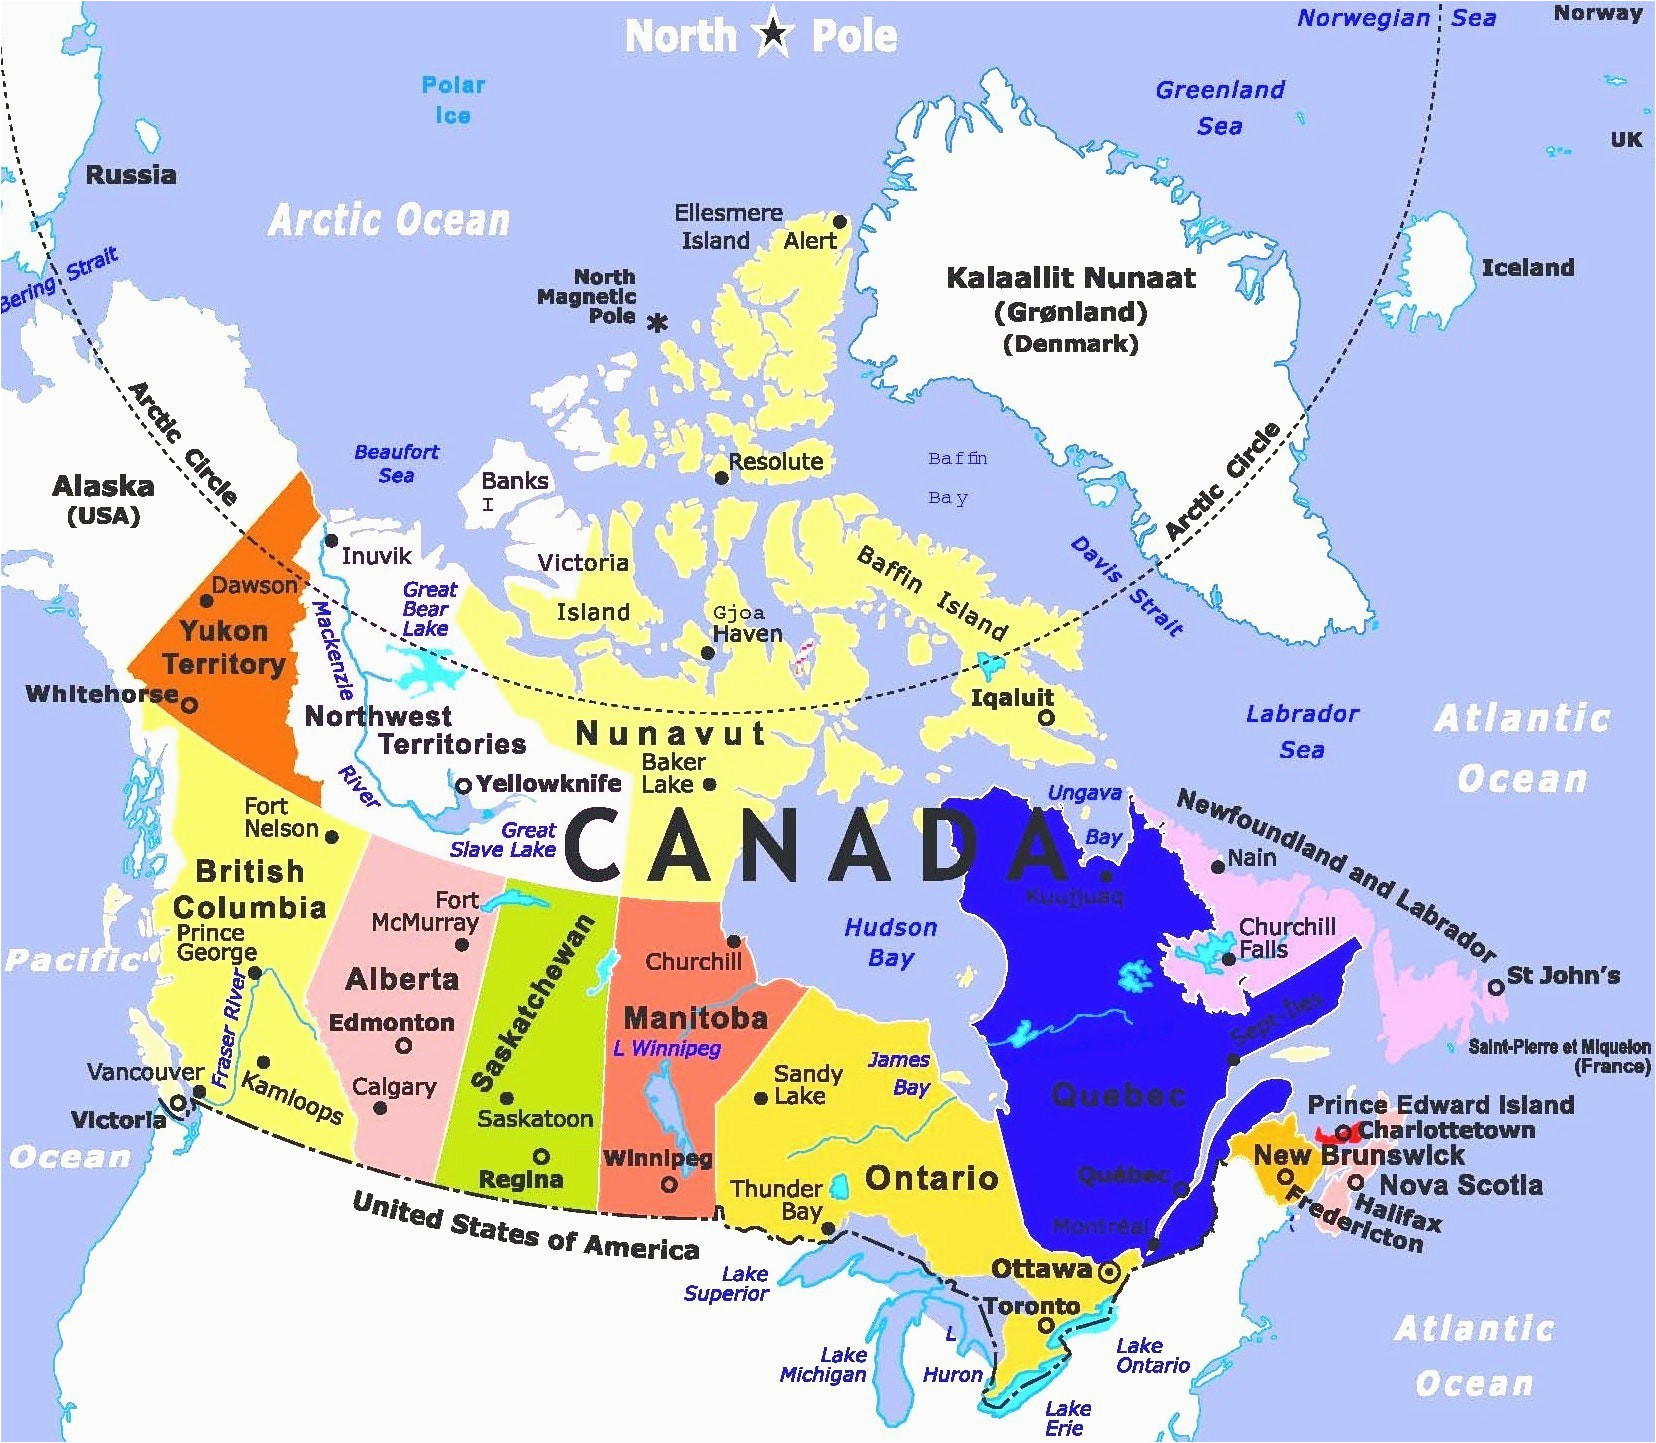 Major Cities Of Canada Map.Map Of Michigan And Ontario Canada Us Canada Map With Major Cities